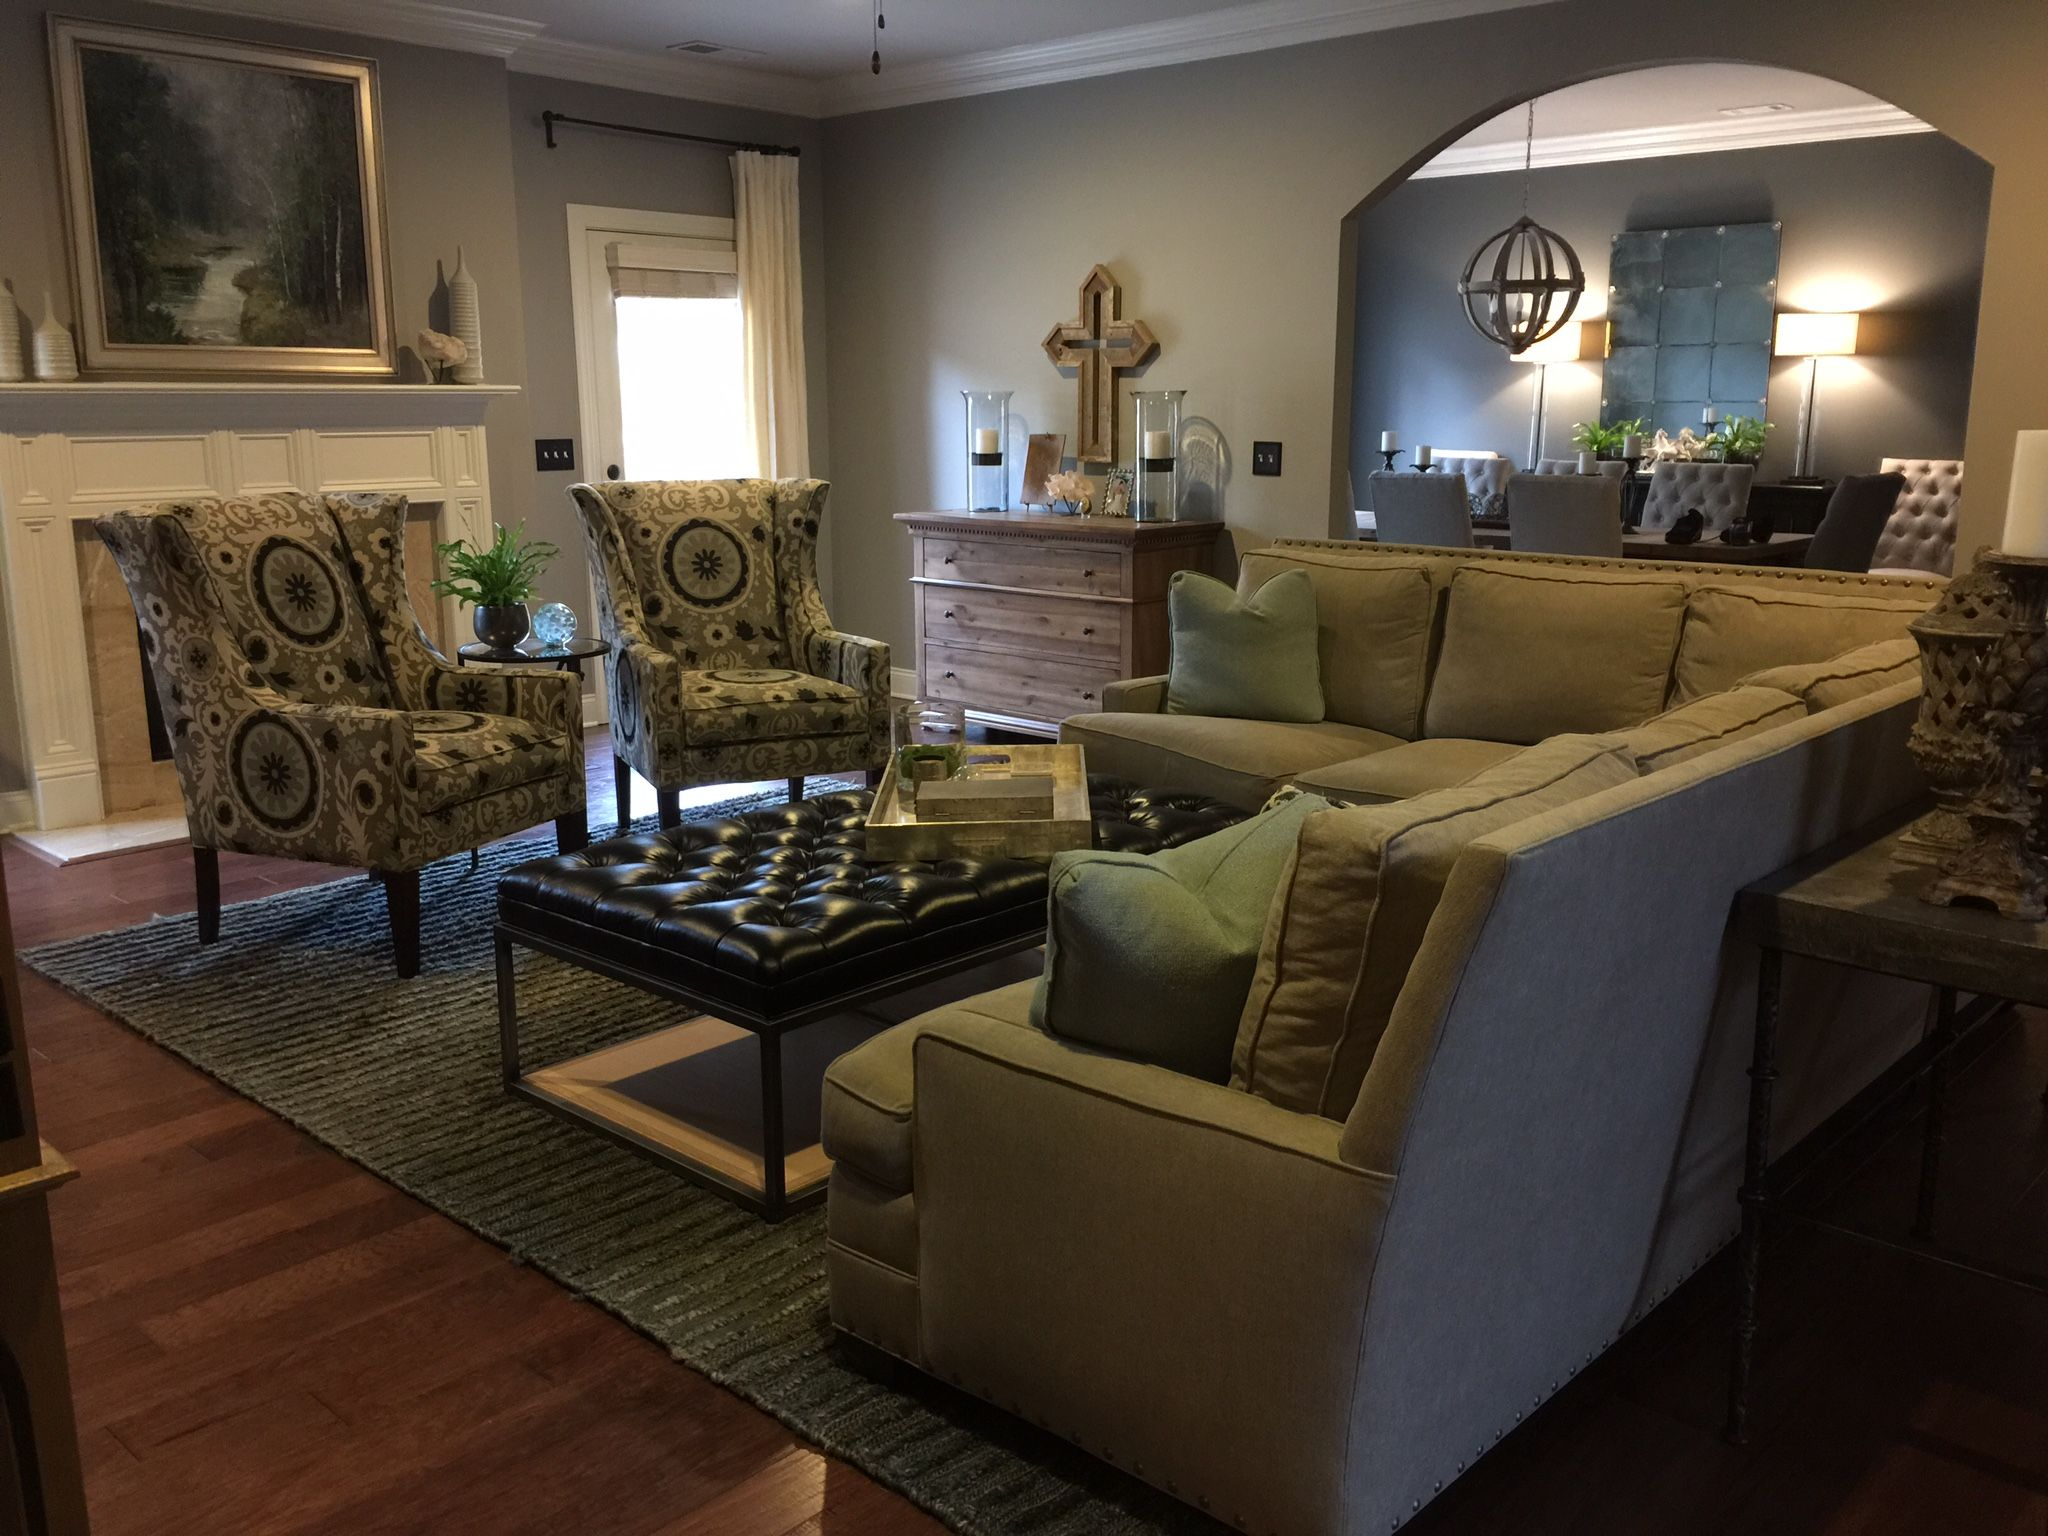 Rustic Contemporary Family Room Wall Paint Color Stone Harbor By Benjamin